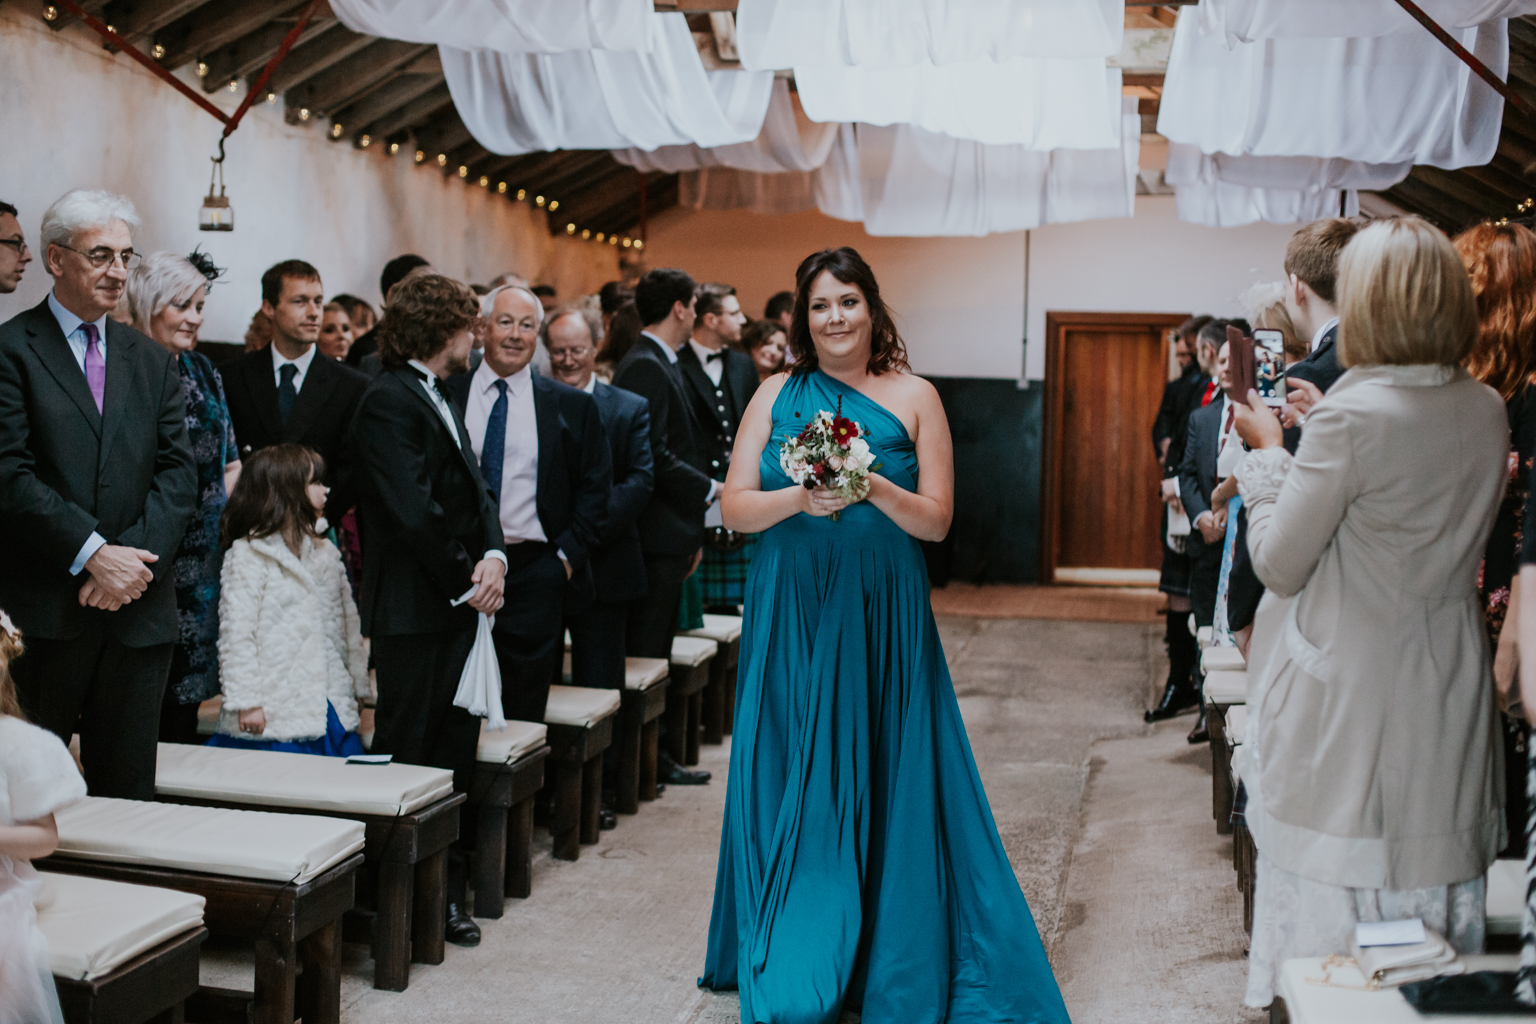 Bridesmaid walks down the aisle at Harelaw farm